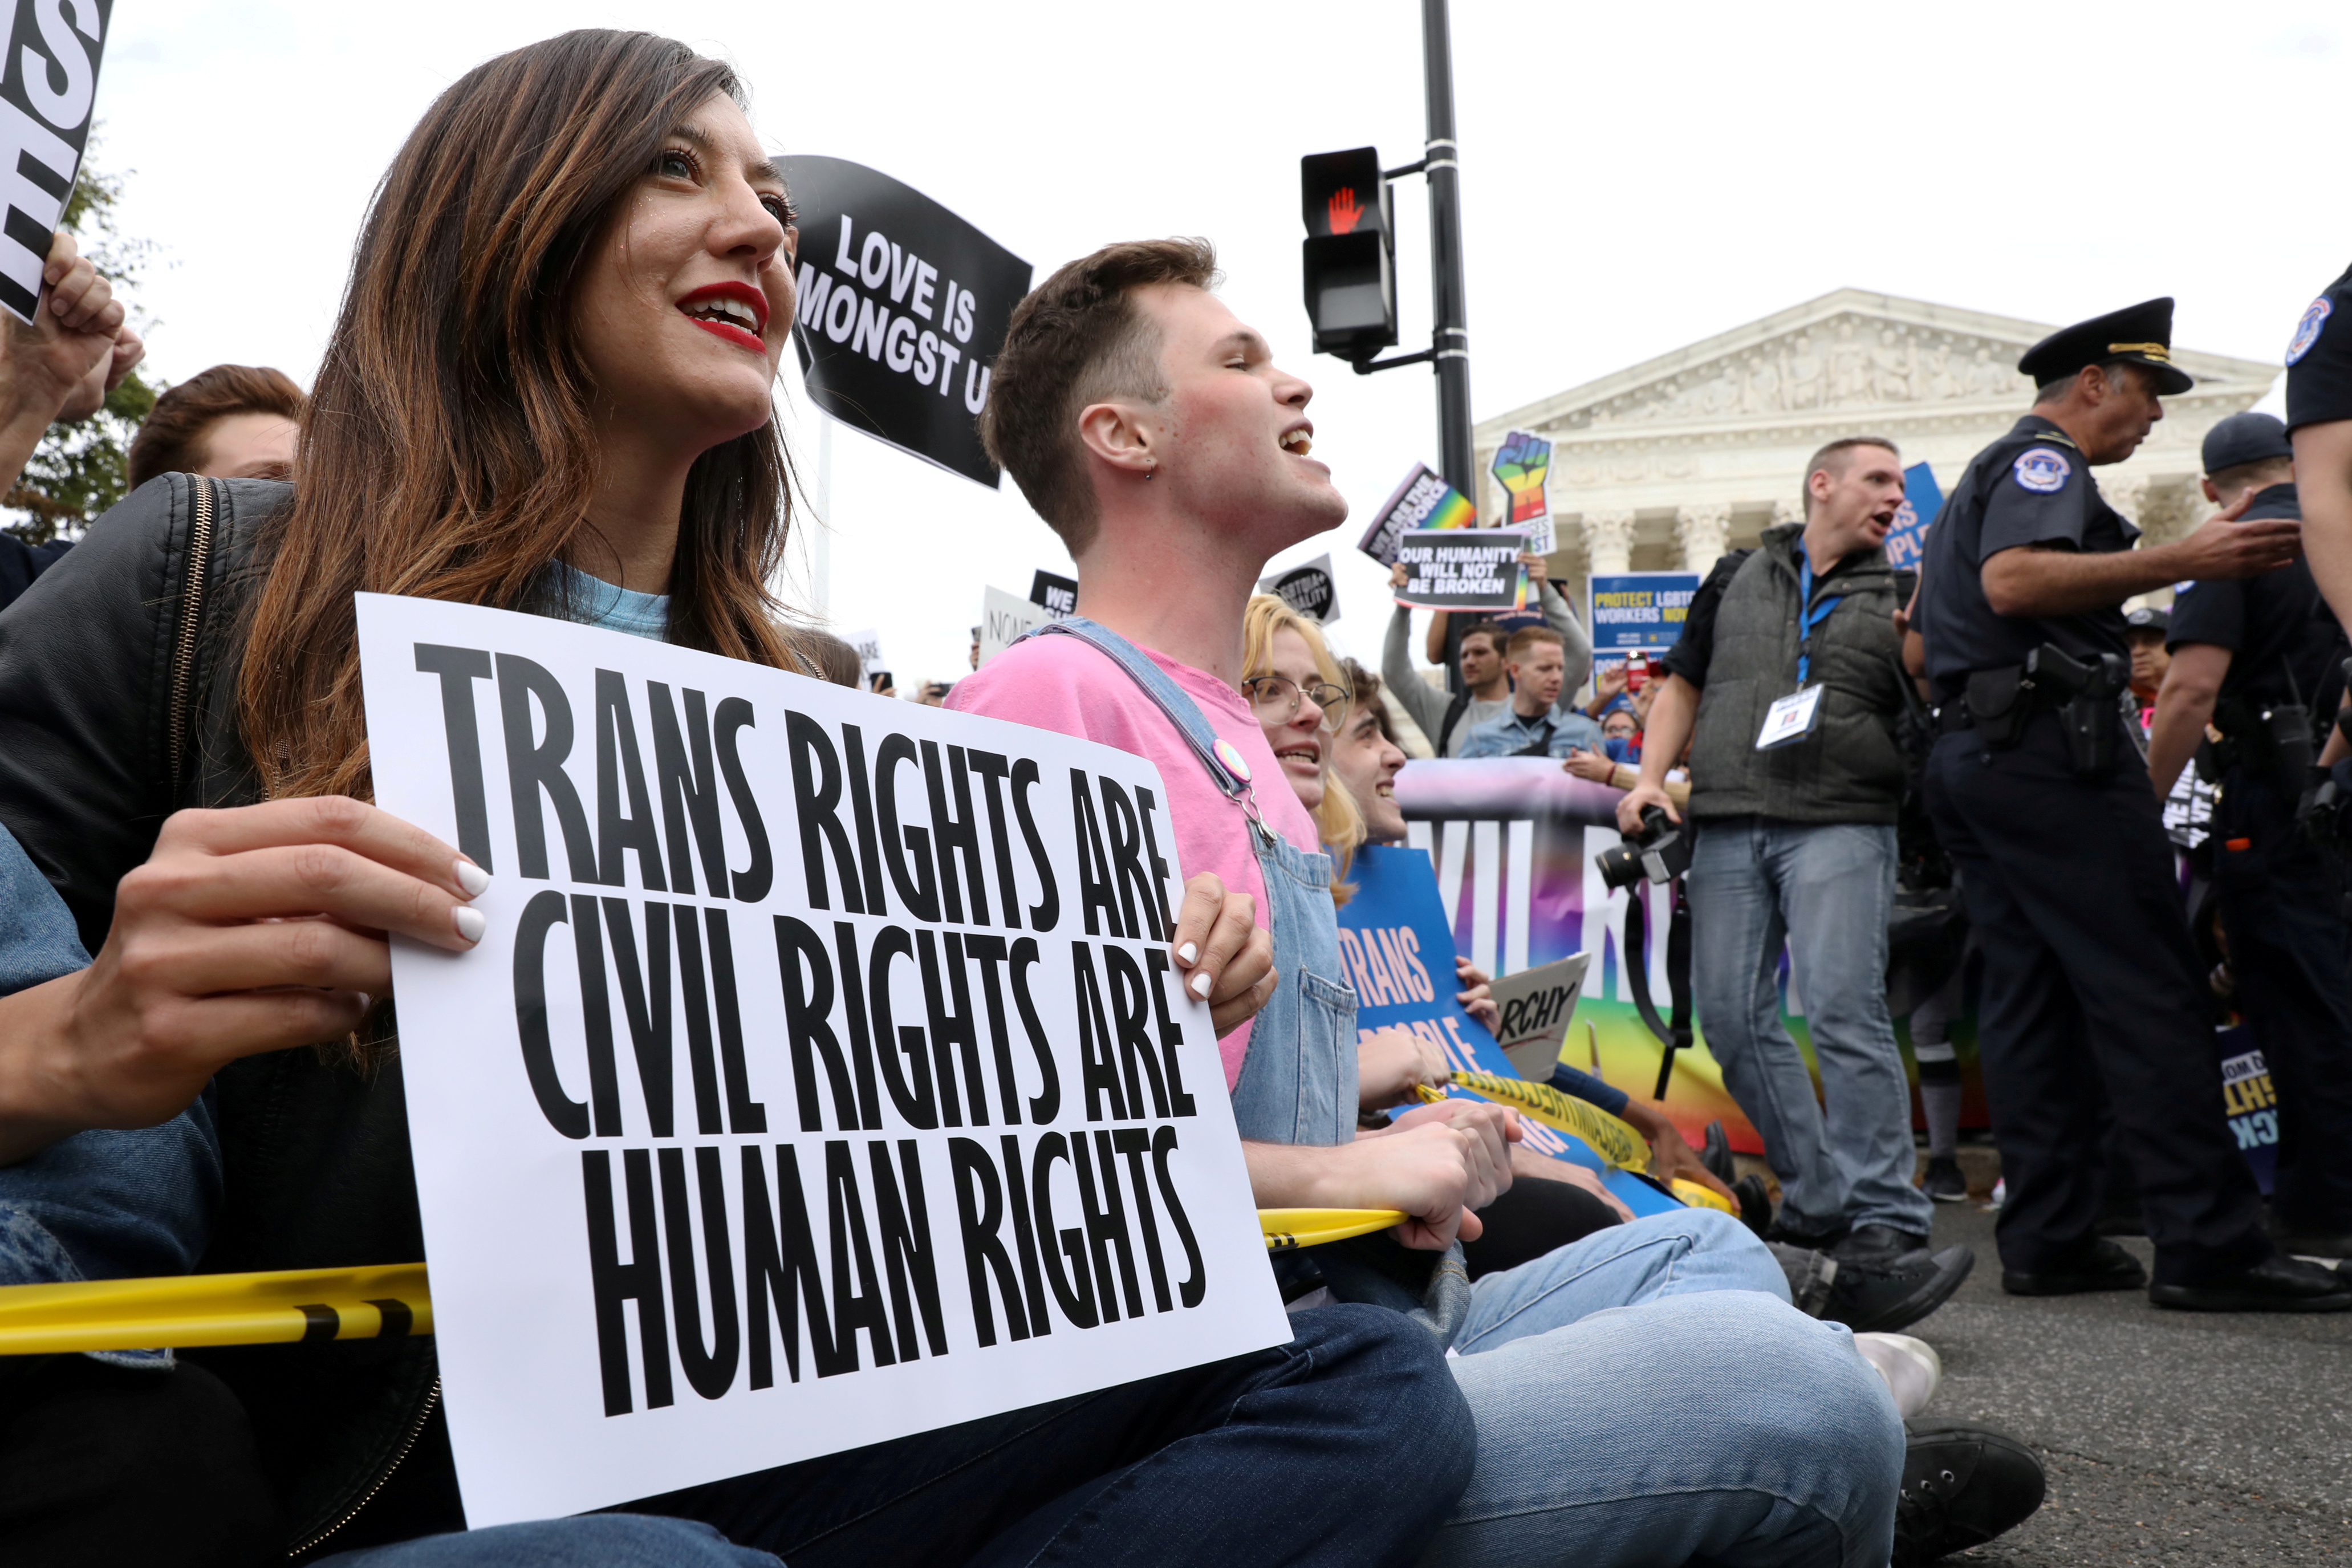 LGBTQ activists and supporters block the street outside the U.S. Supreme Court as it hears arguments in a major LGBT rights case on whether a federal anti-discrimination law that prohibits workplace discrimination on the basis of sex covers gay and transgender employees in Washington, U.S. October 8, 2019.  REUTERS/Jonathan Ernst